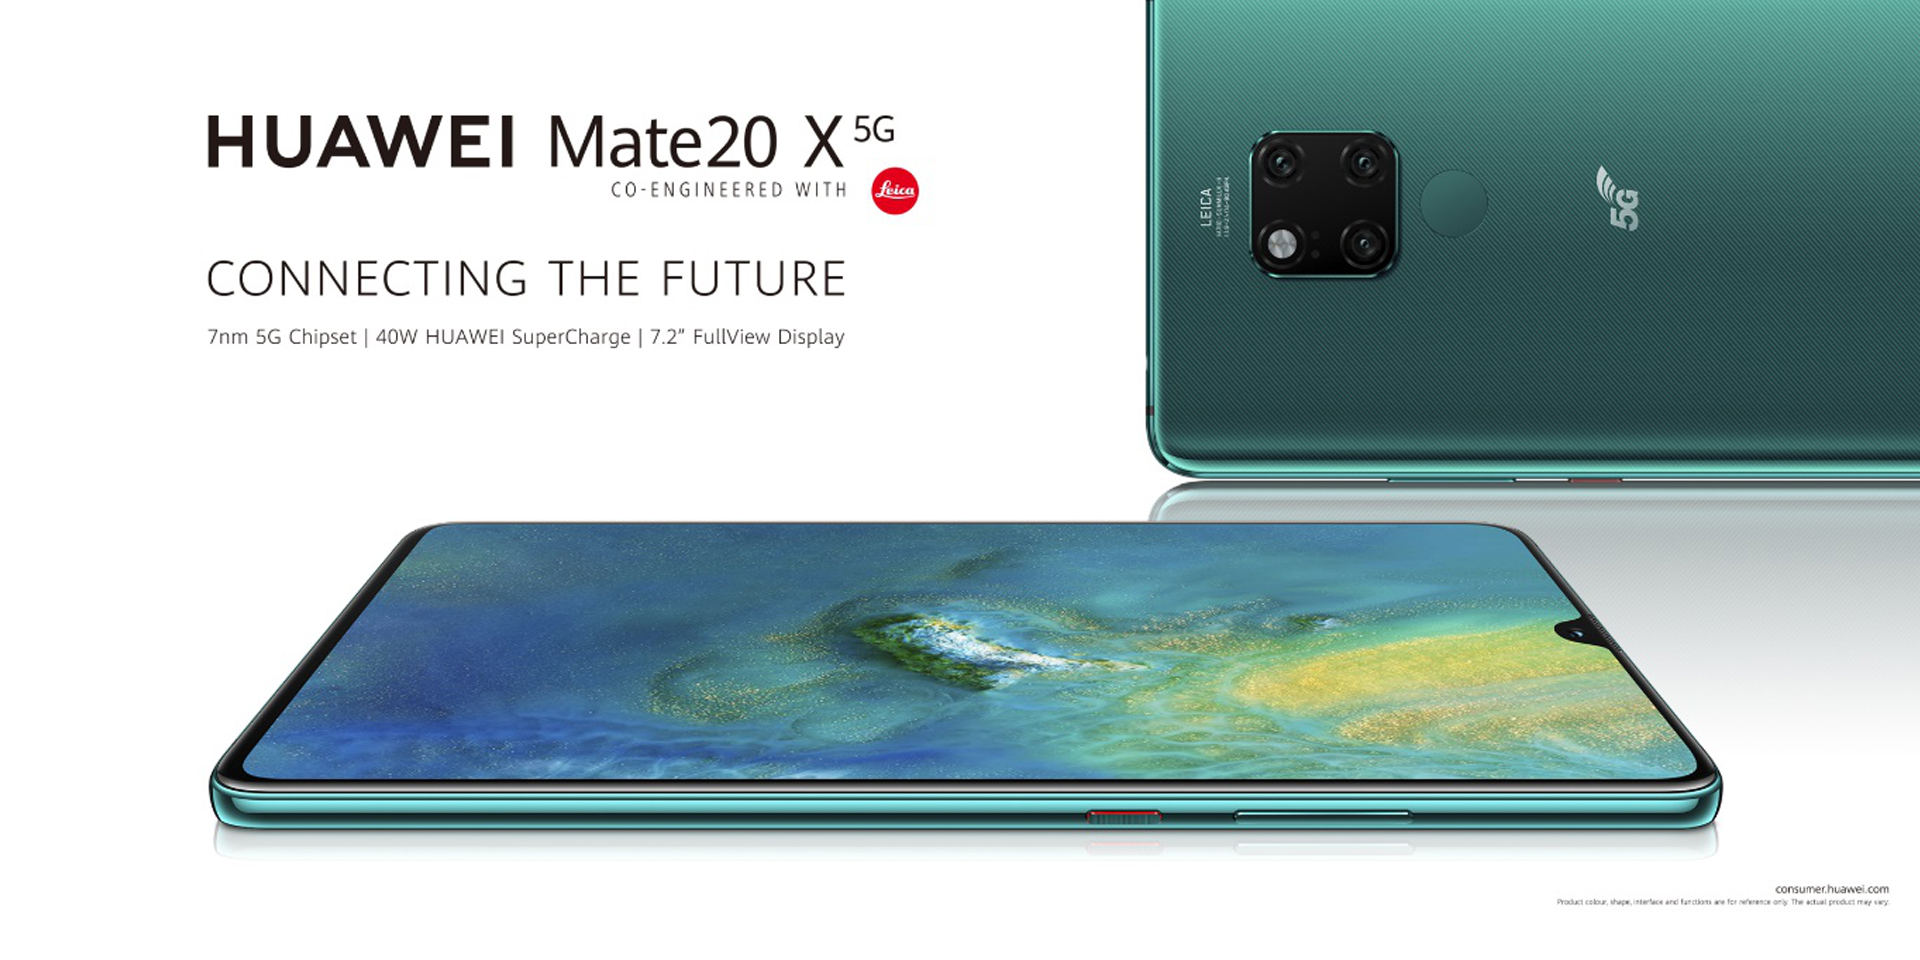 The Huawei Mate 20X 5G is an update to the massive gaming phone but with 5G